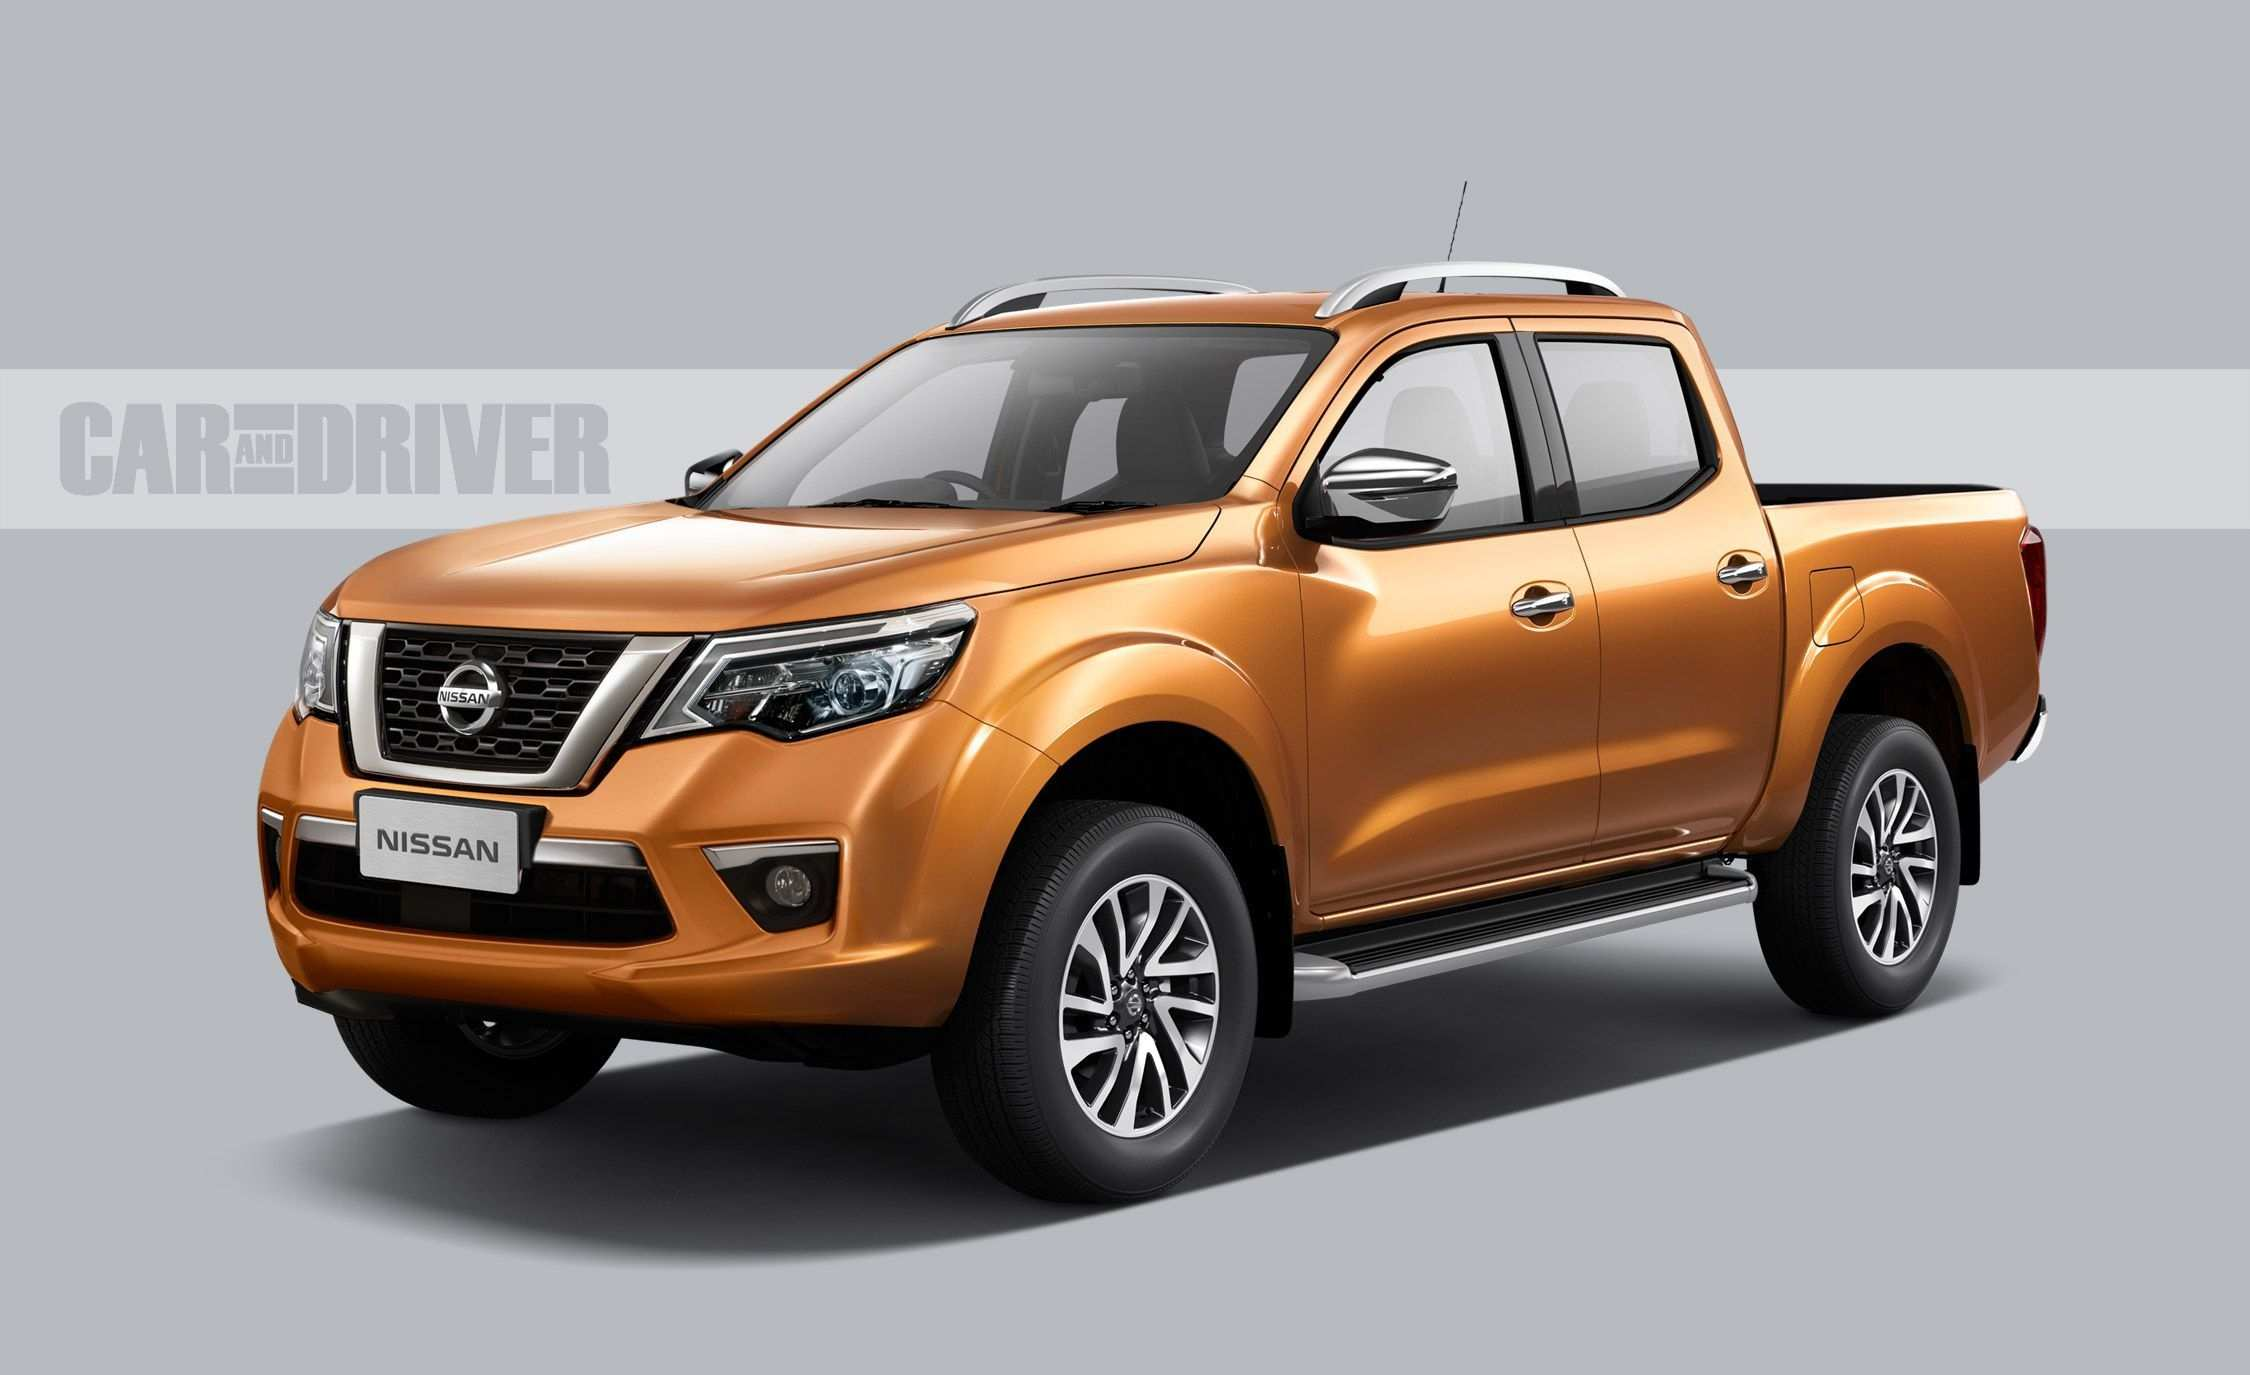 57 Gallery of New Nissan 2019 Specs First Drive Exterior and Interior with New Nissan 2019 Specs First Drive